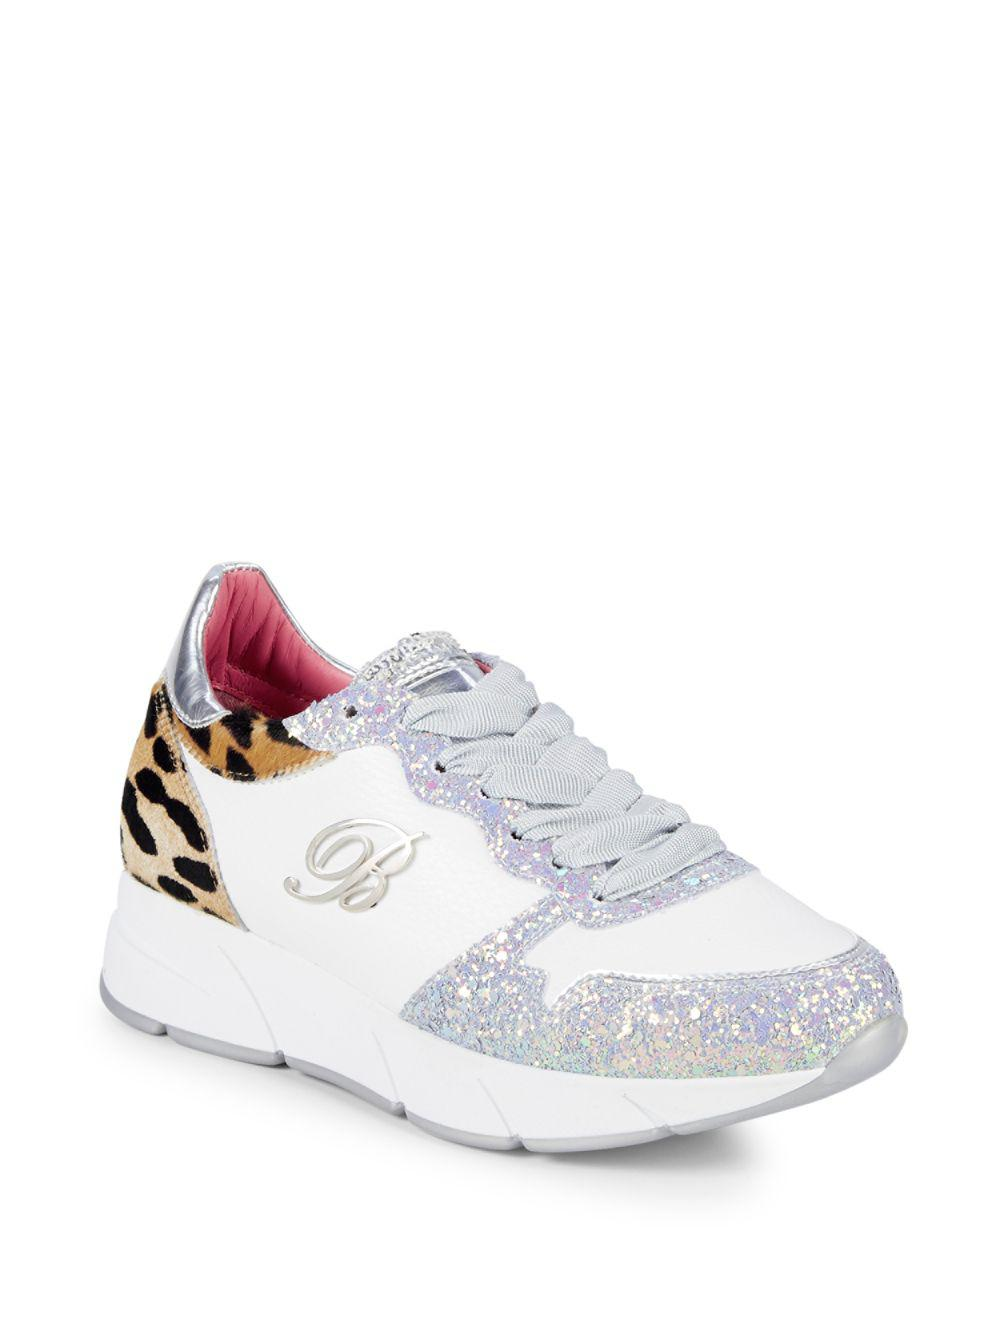 Sneakers Calf Dyed White Leopard Blumarine Leather In Glitter amp; Hair RU0wvnqT